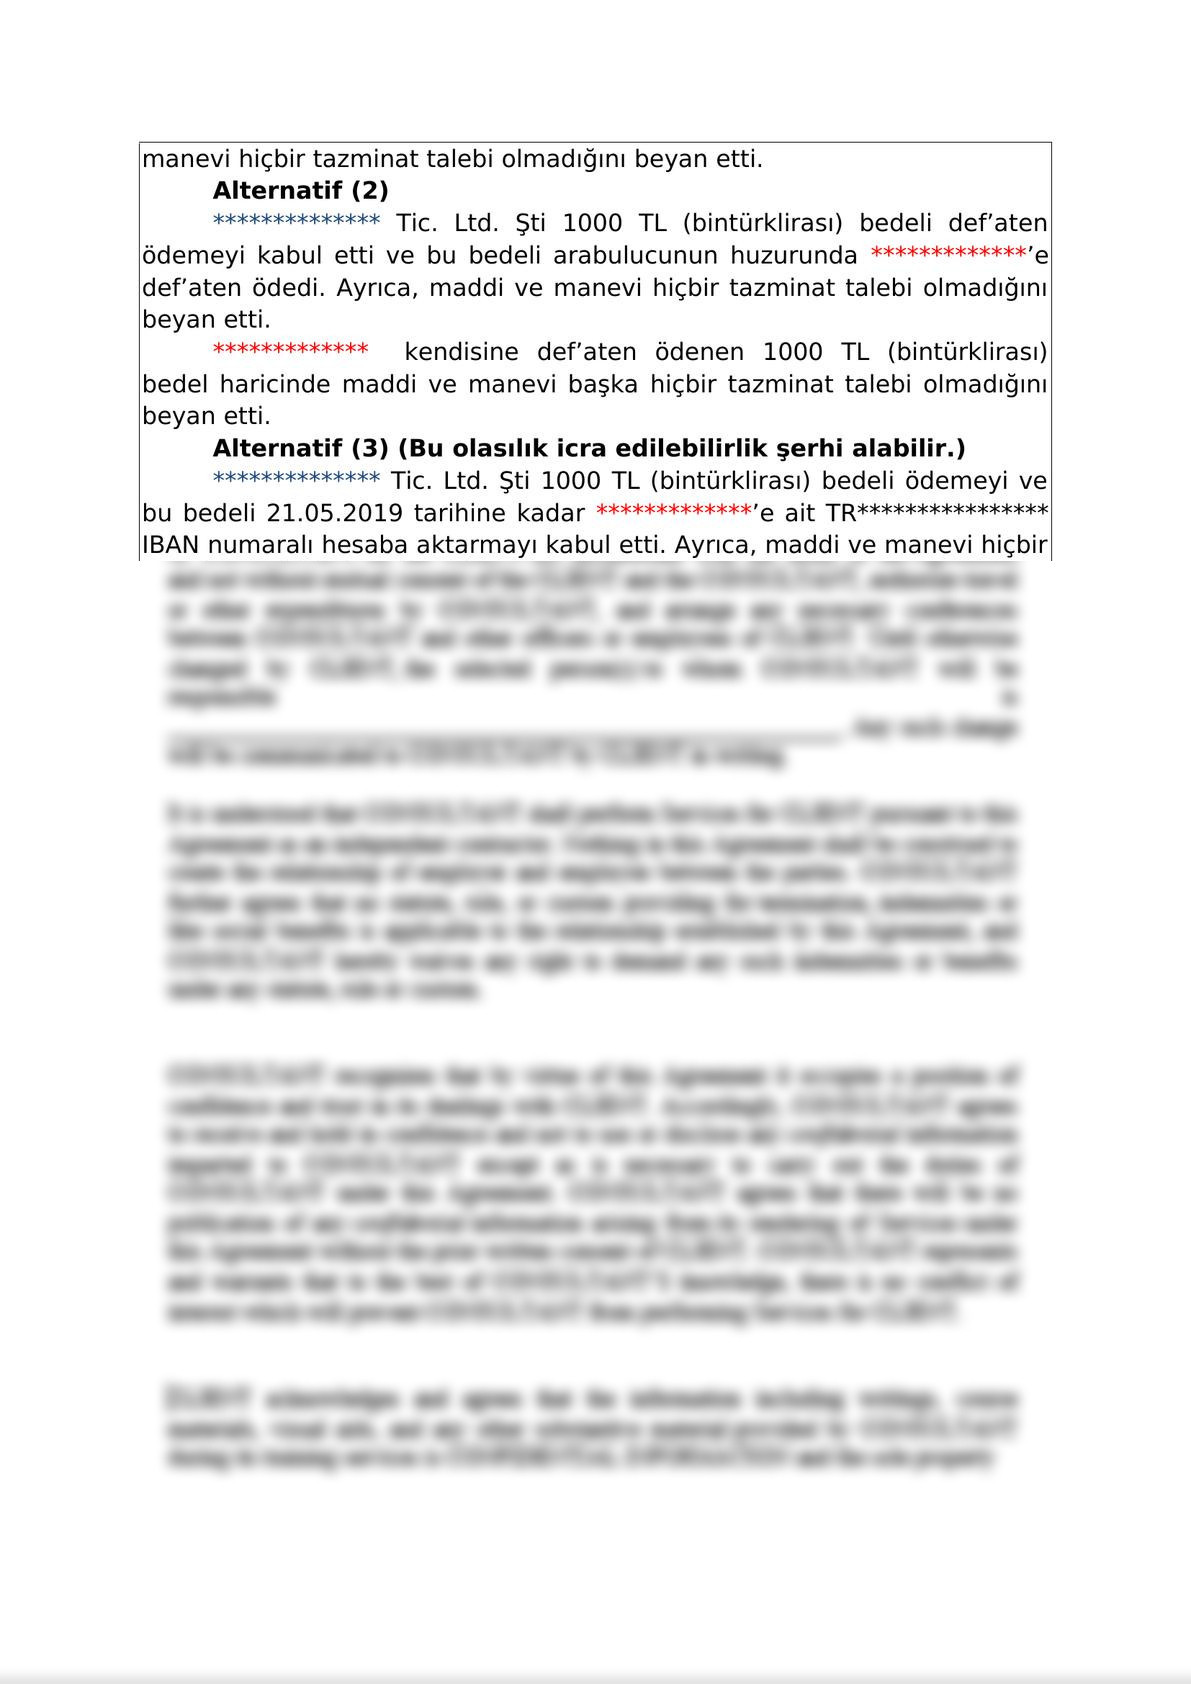 Mediation Settlement Agreement  on Commercial Disputes - Turkish-1